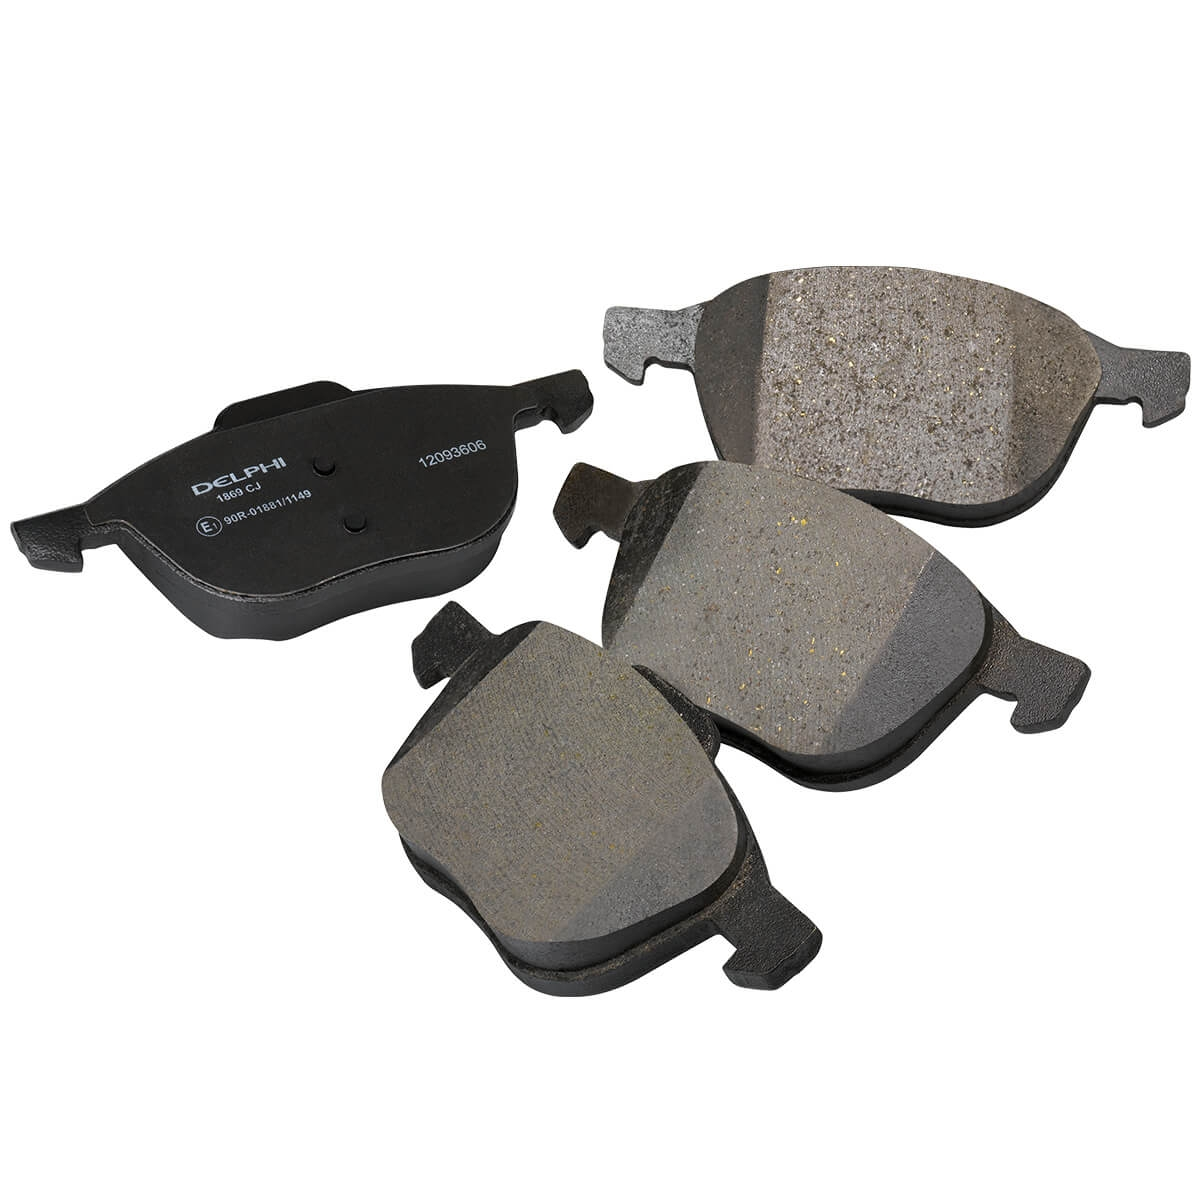 BEDFORD CHEVANNE Brake Pad Set